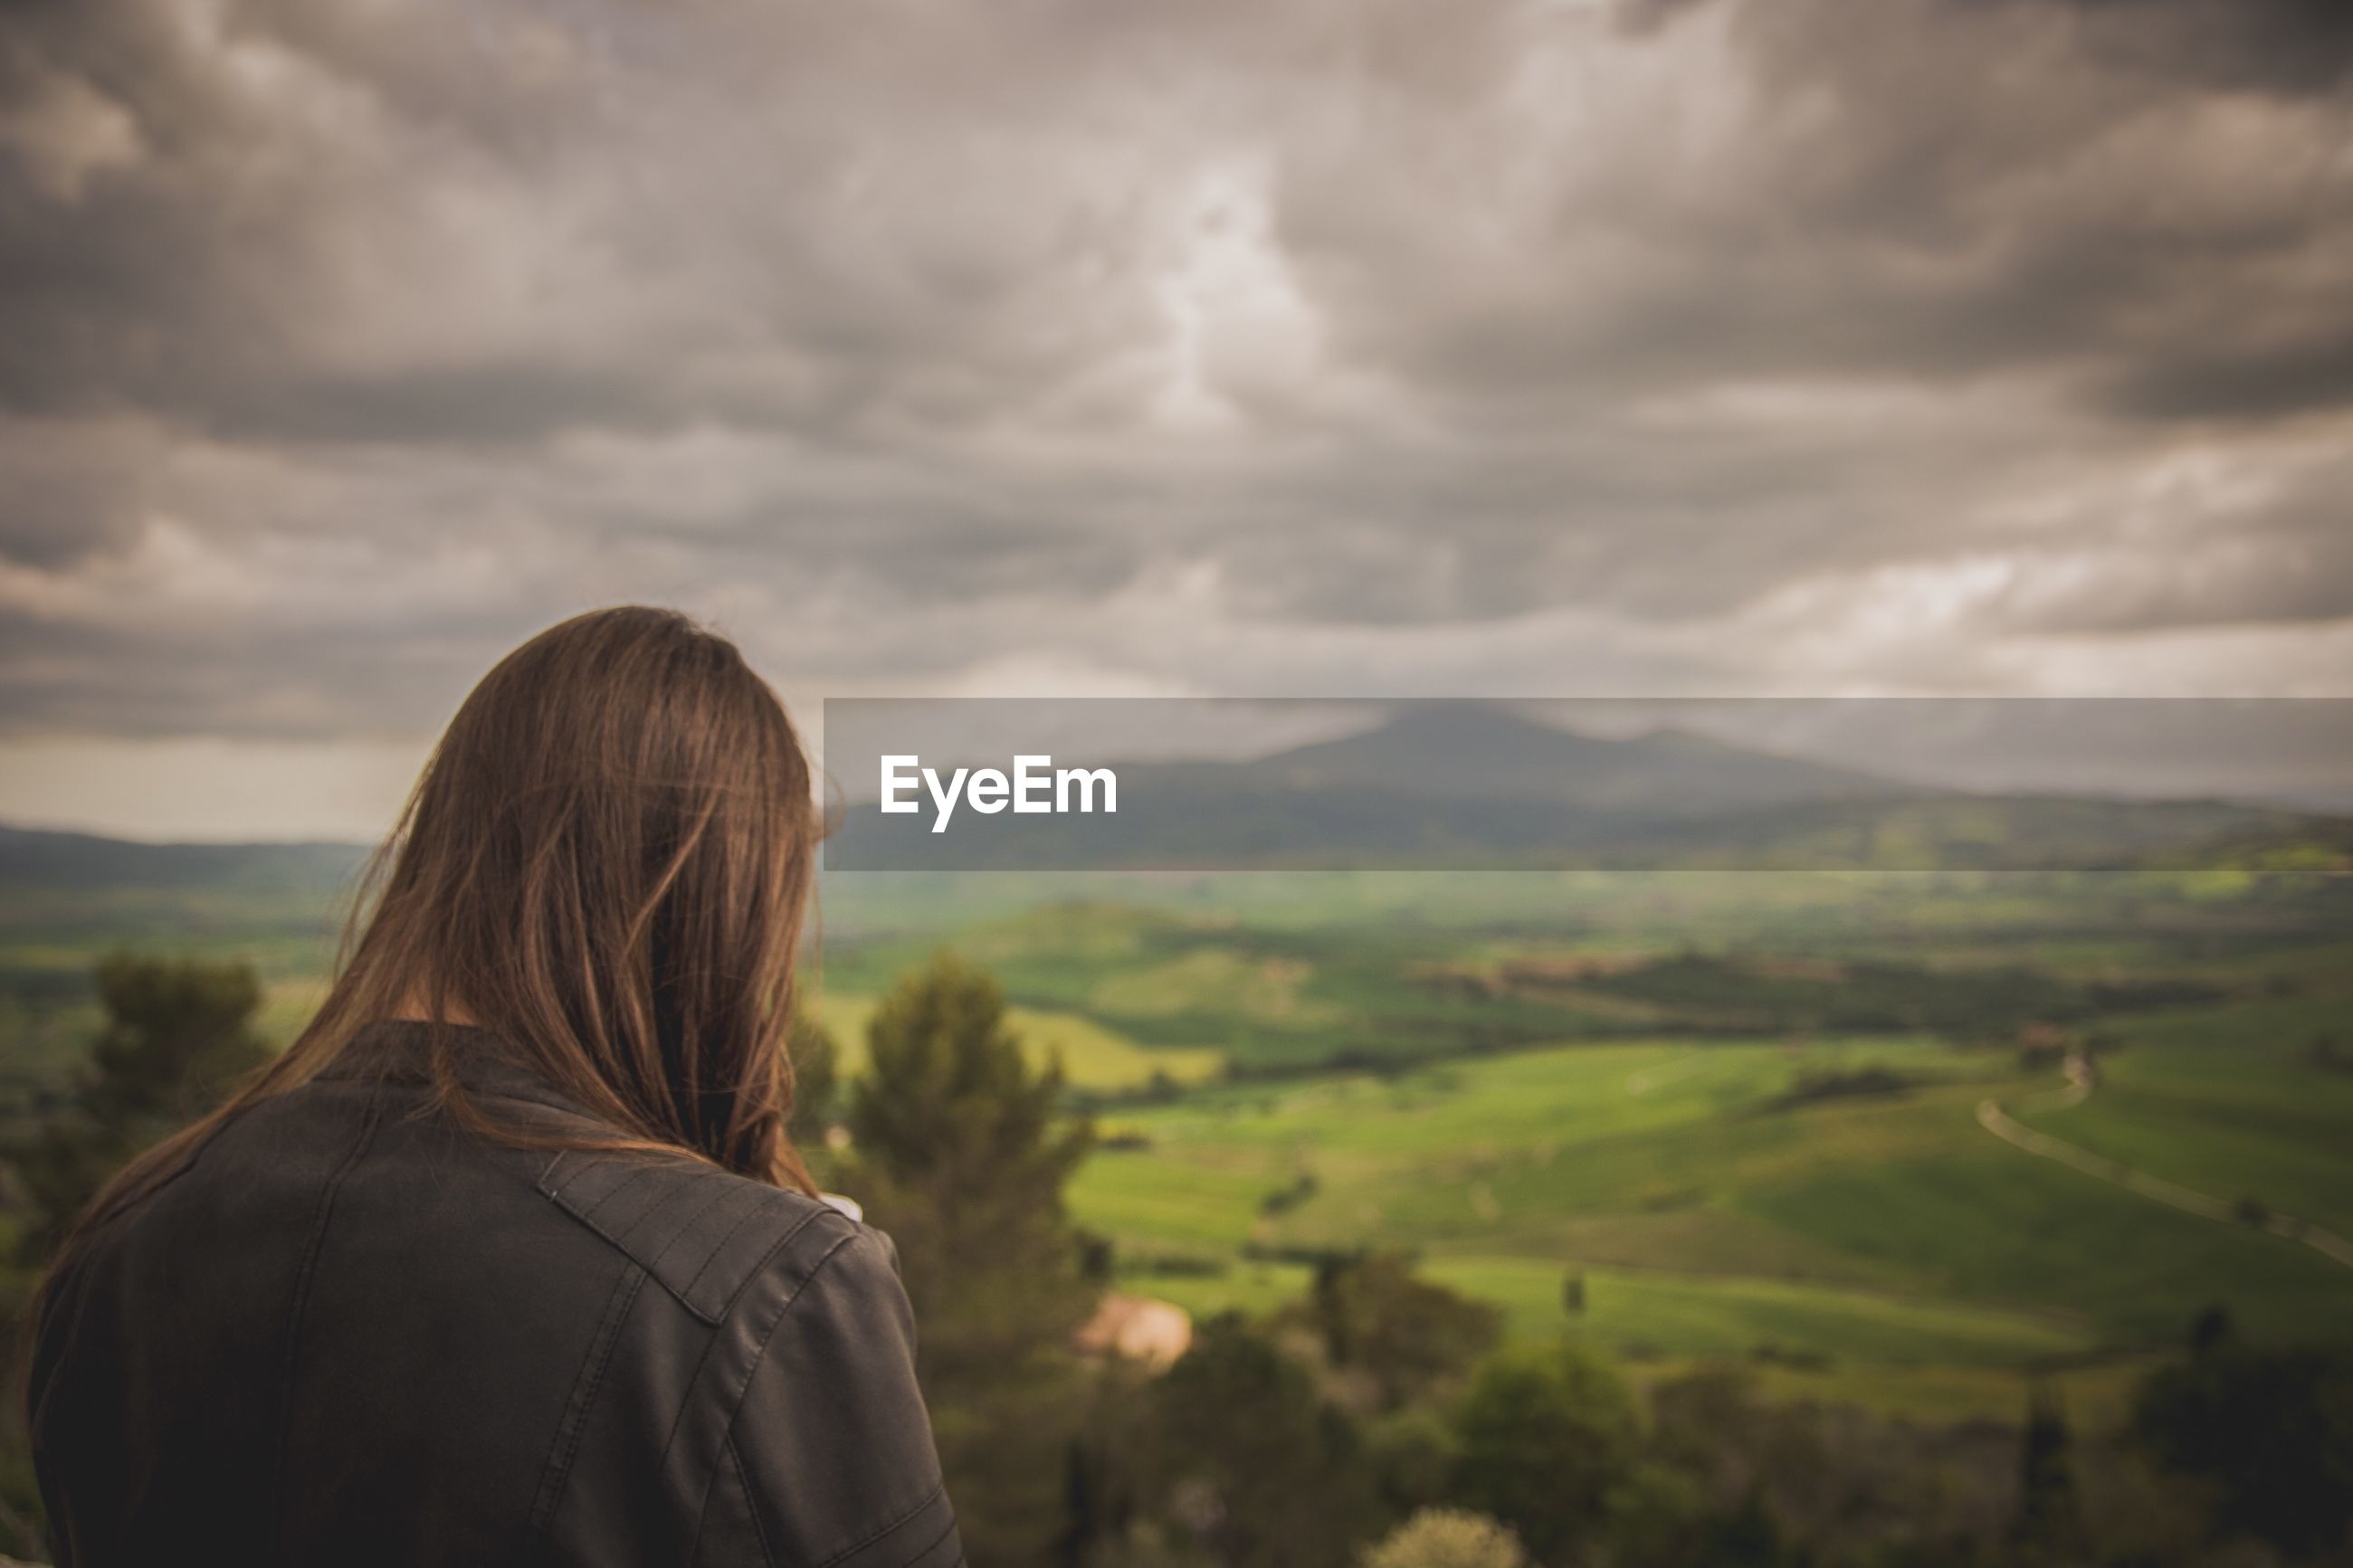 Woman looking at mountains against cloudy sky